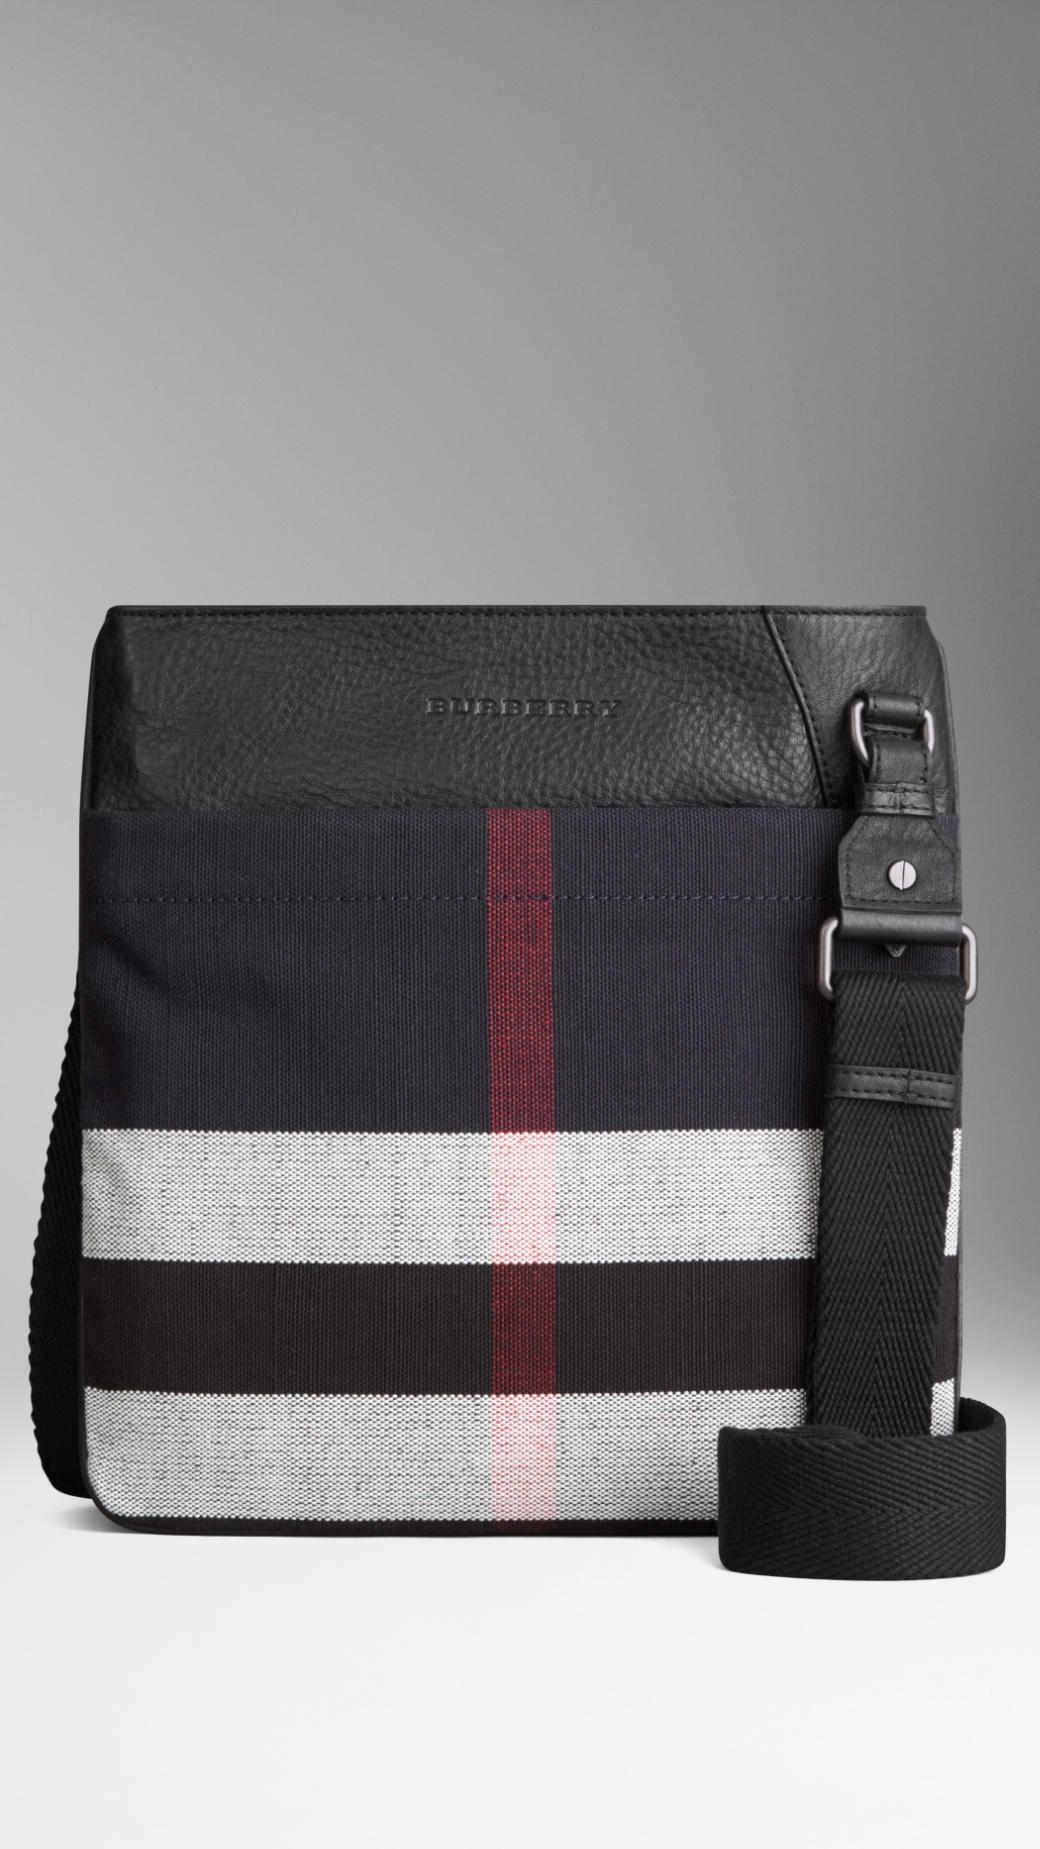 Burberry Canvas Check Crossbody Bag In Black For Men Lyst